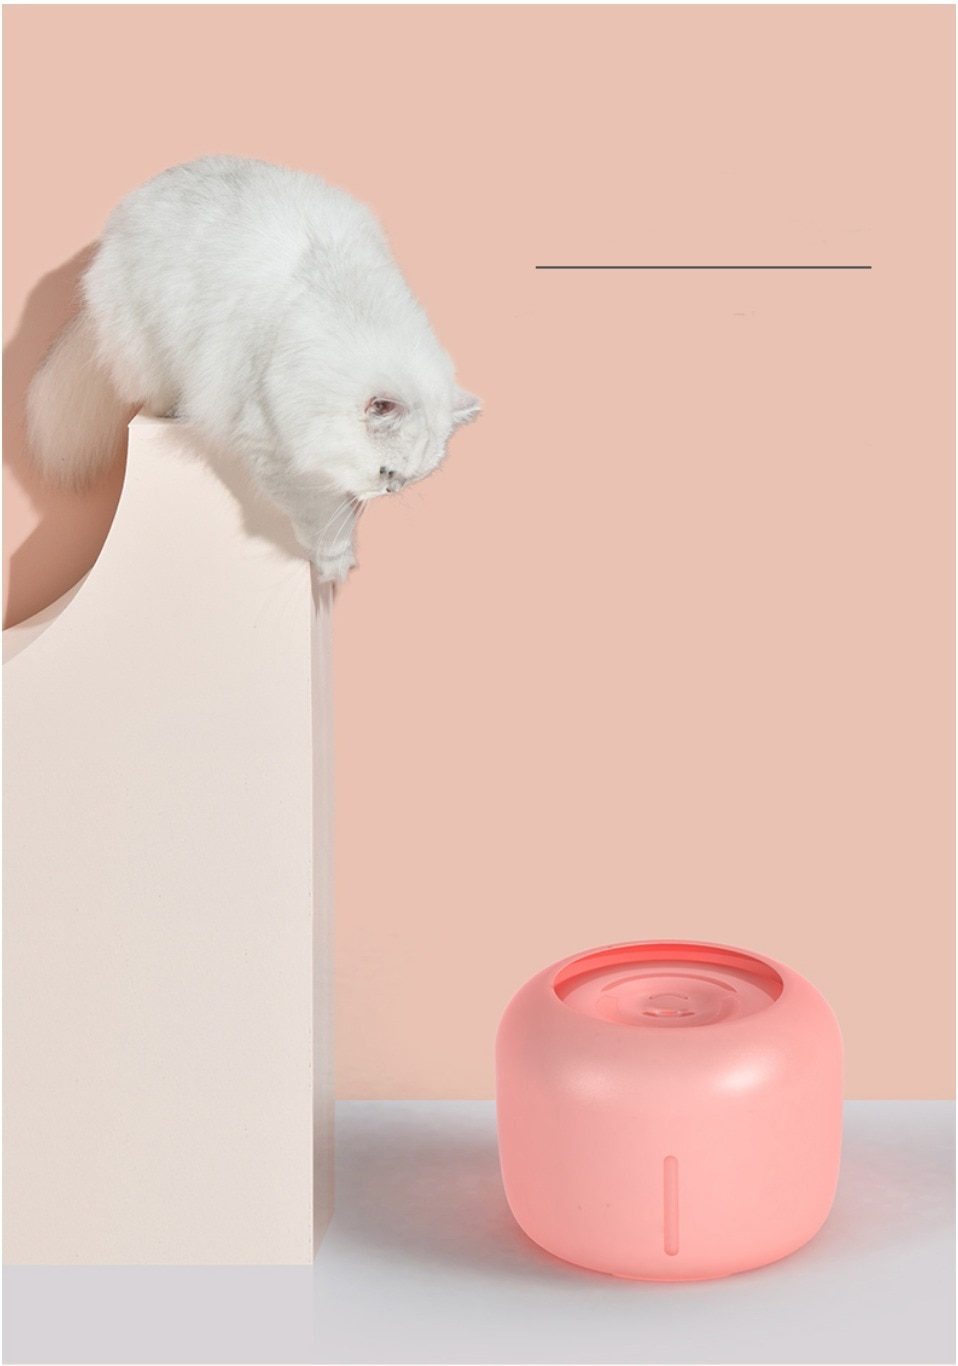 Pet Dog Cat Fountain Drinking Fountain 2.5L Automatic Drinker water Bowl Pet Dog Cats Electric USB Dispenser With 1 Filter Box